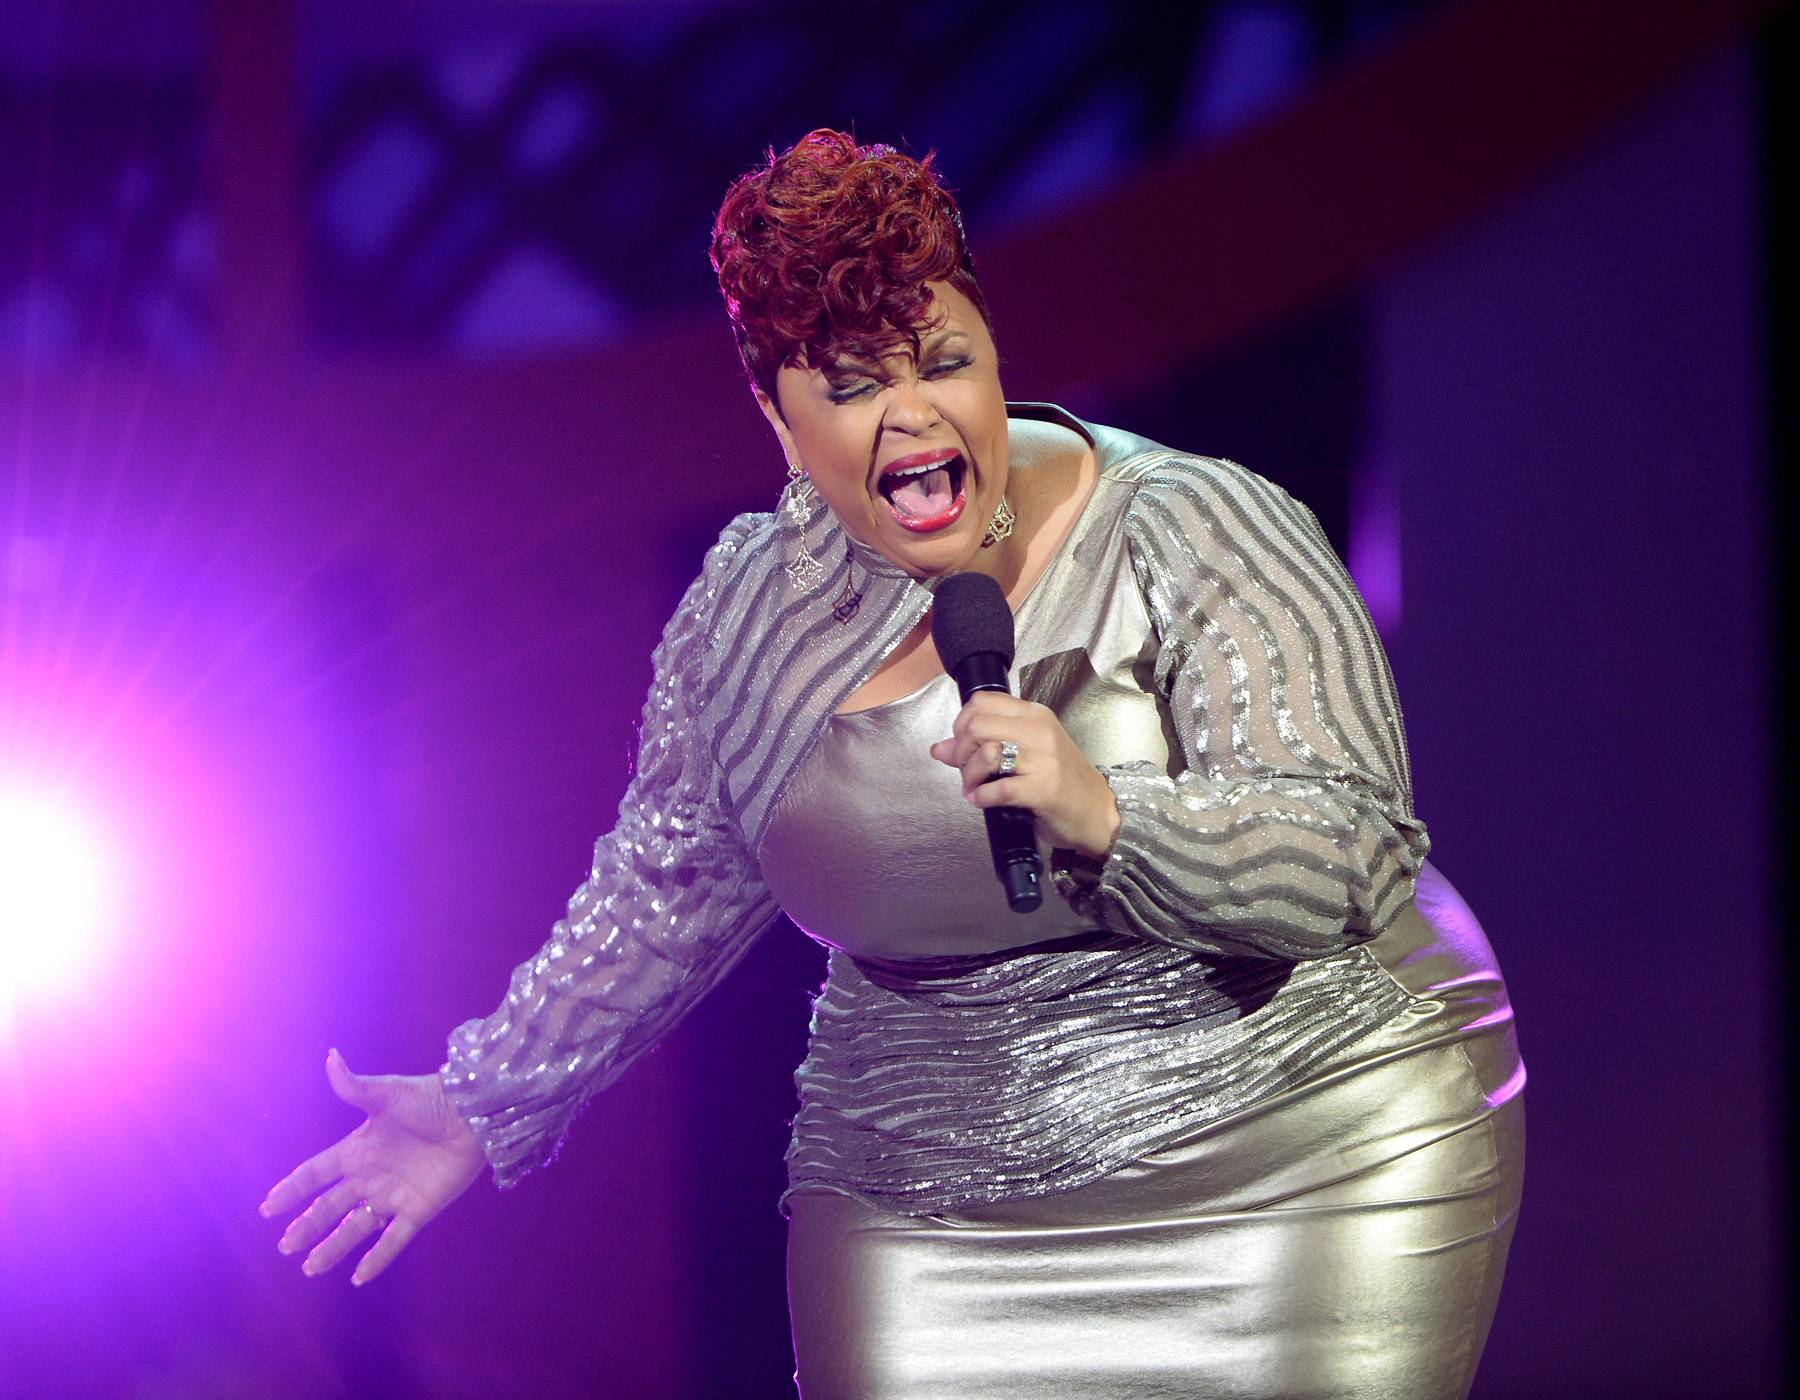 """Vocal Slayage - There are two words that encapsulate Tamela Mann's performance of """"I Can Only Imagine"""": vocal slayage. As if there aren't enough reasons to watch, Mann's soul-stirring performance is a must-see moment. Watchon Sunday, April 6 at 8P/7C.(Photo: Jason Kempin/Getty Images for BET)"""